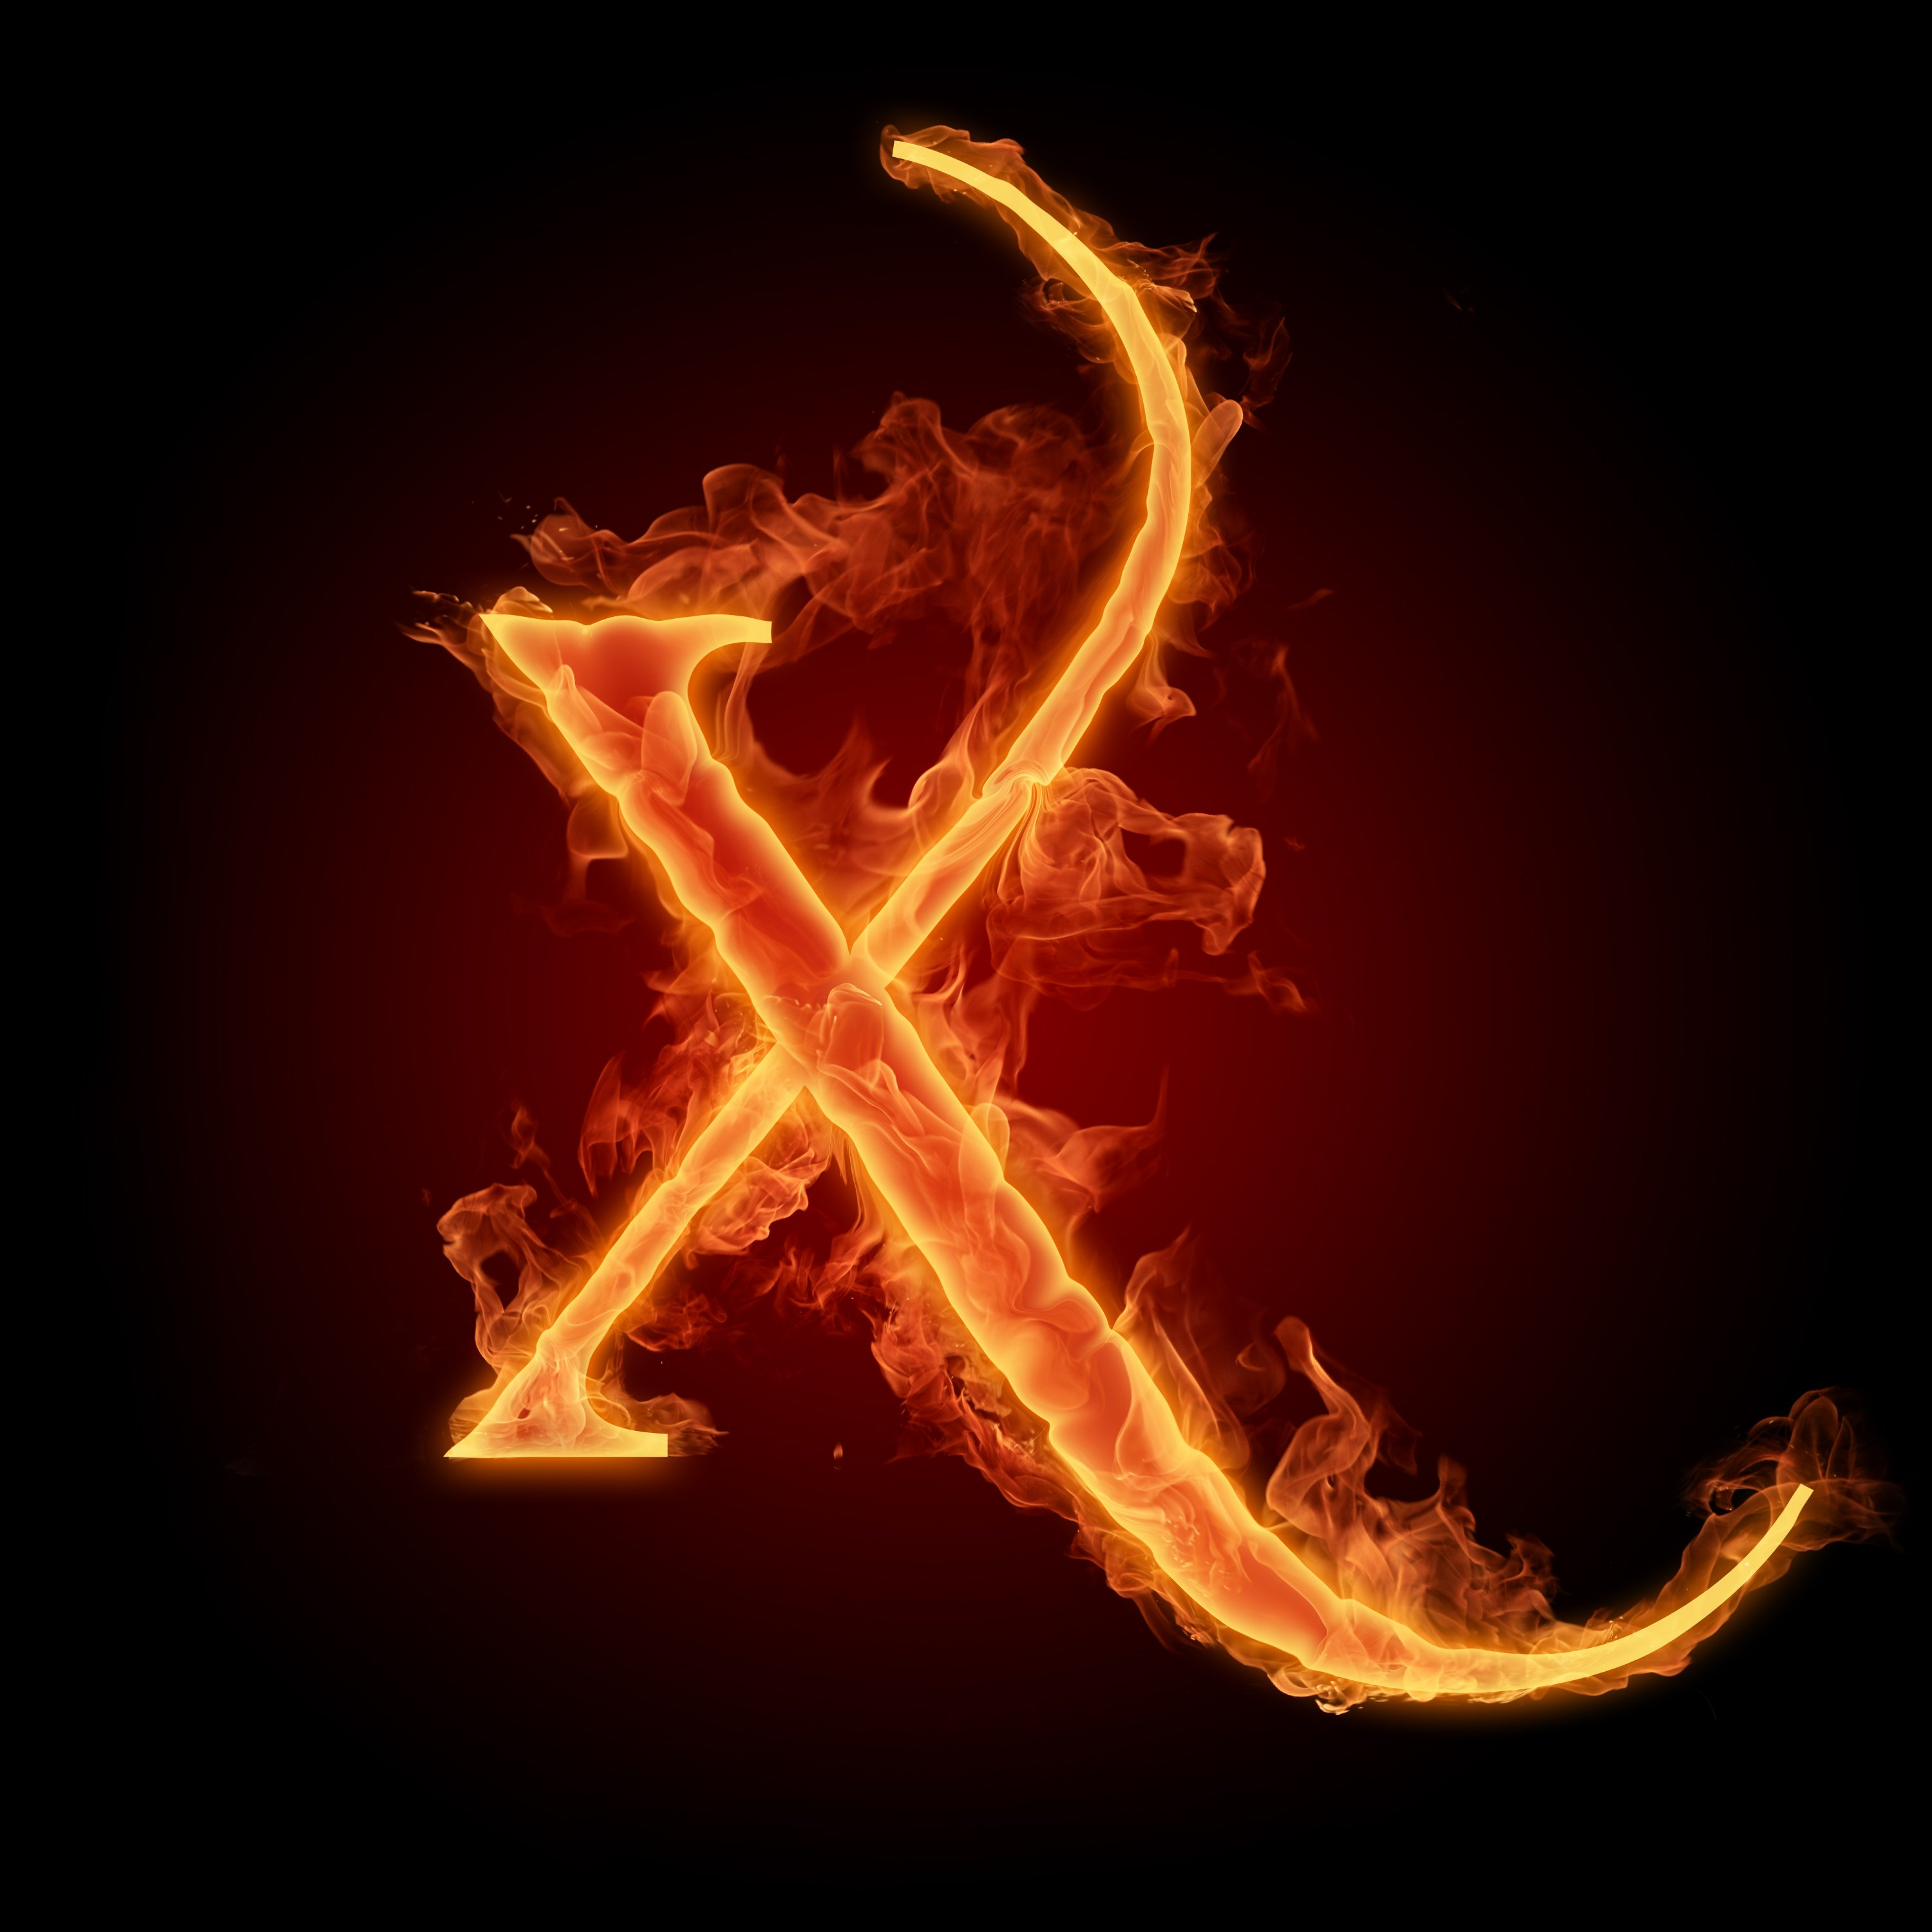 Fire Letters Wallpapers HD 3000X3000 S Z   Photo 3 of 8 phombocom 3000x3000